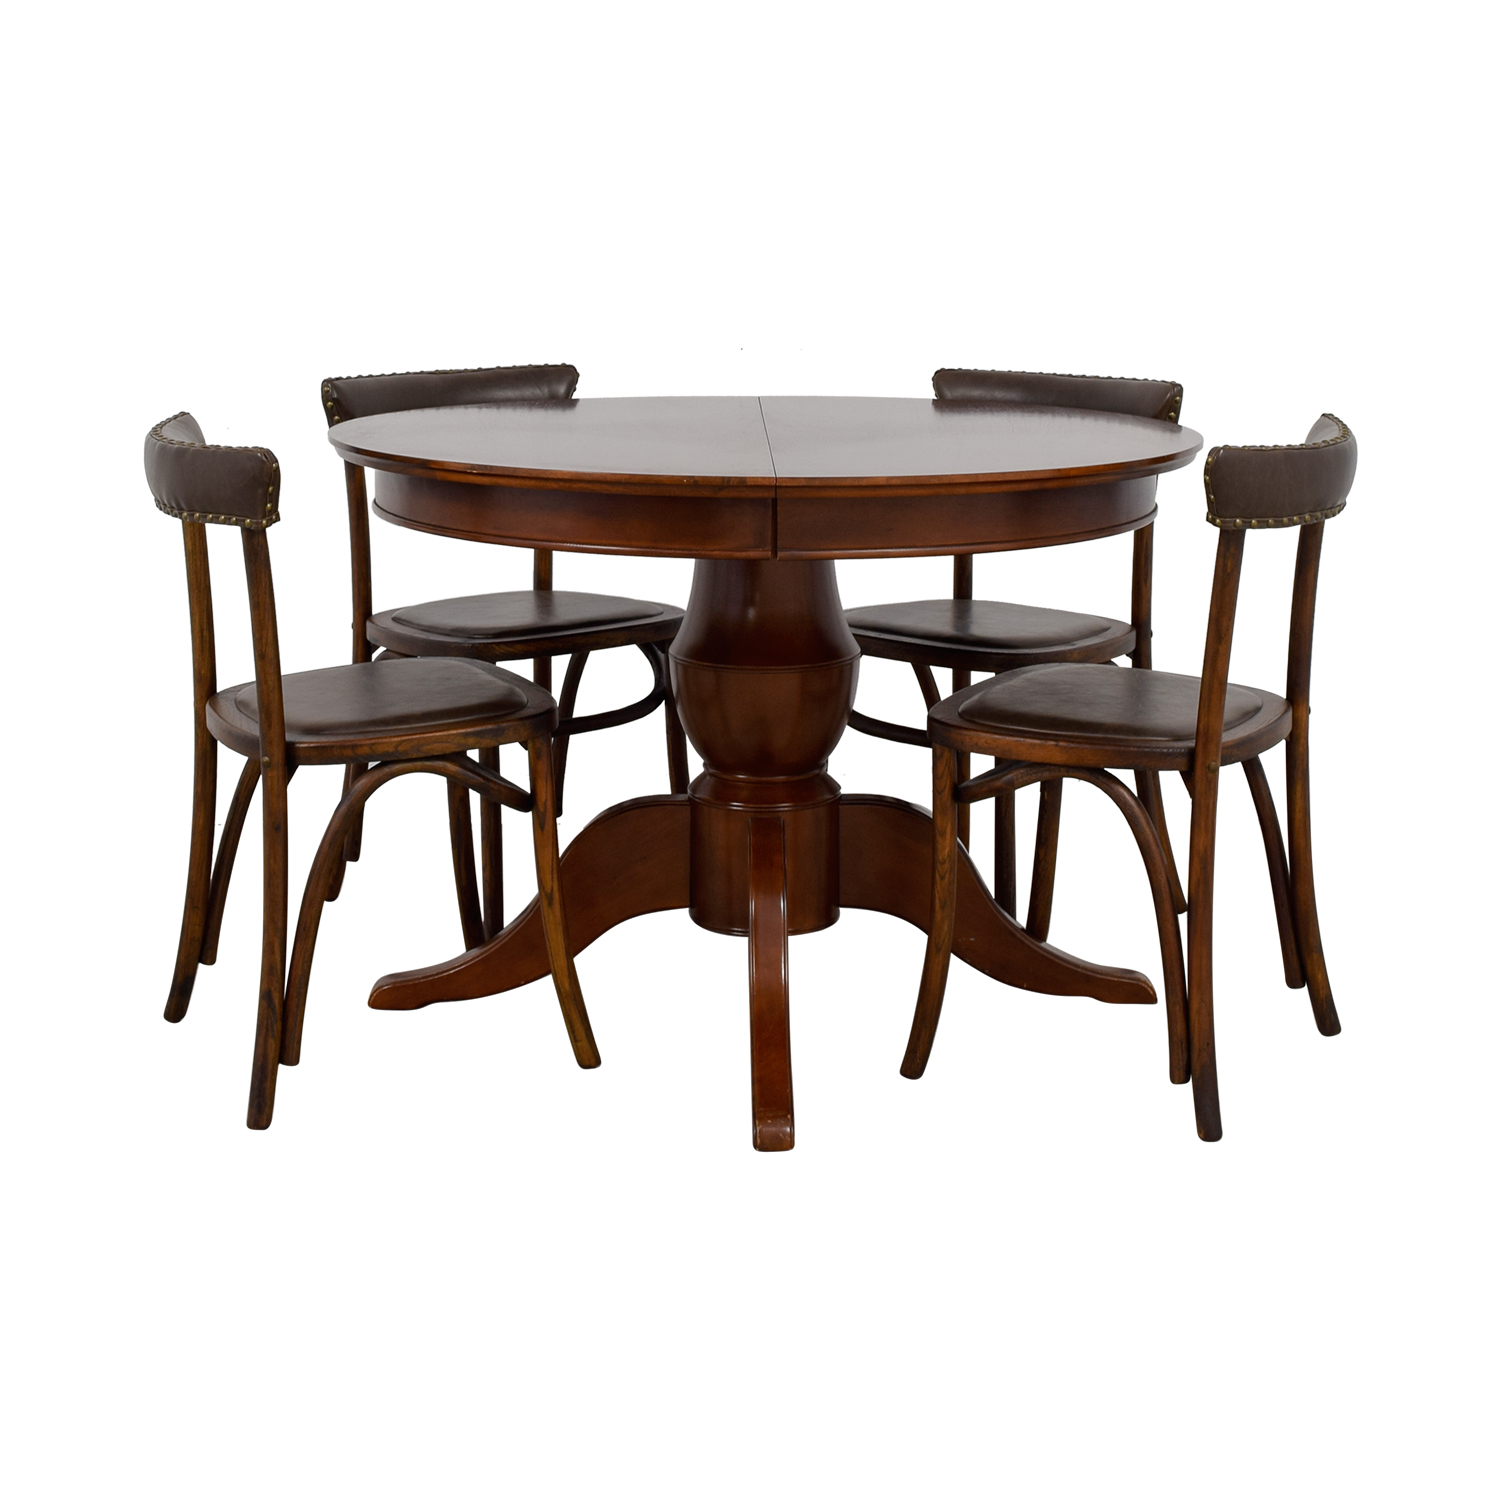 shop Pottery Barn Round Spindle Table with Extension Leaf Dining Set Pottery Barn Dining Sets